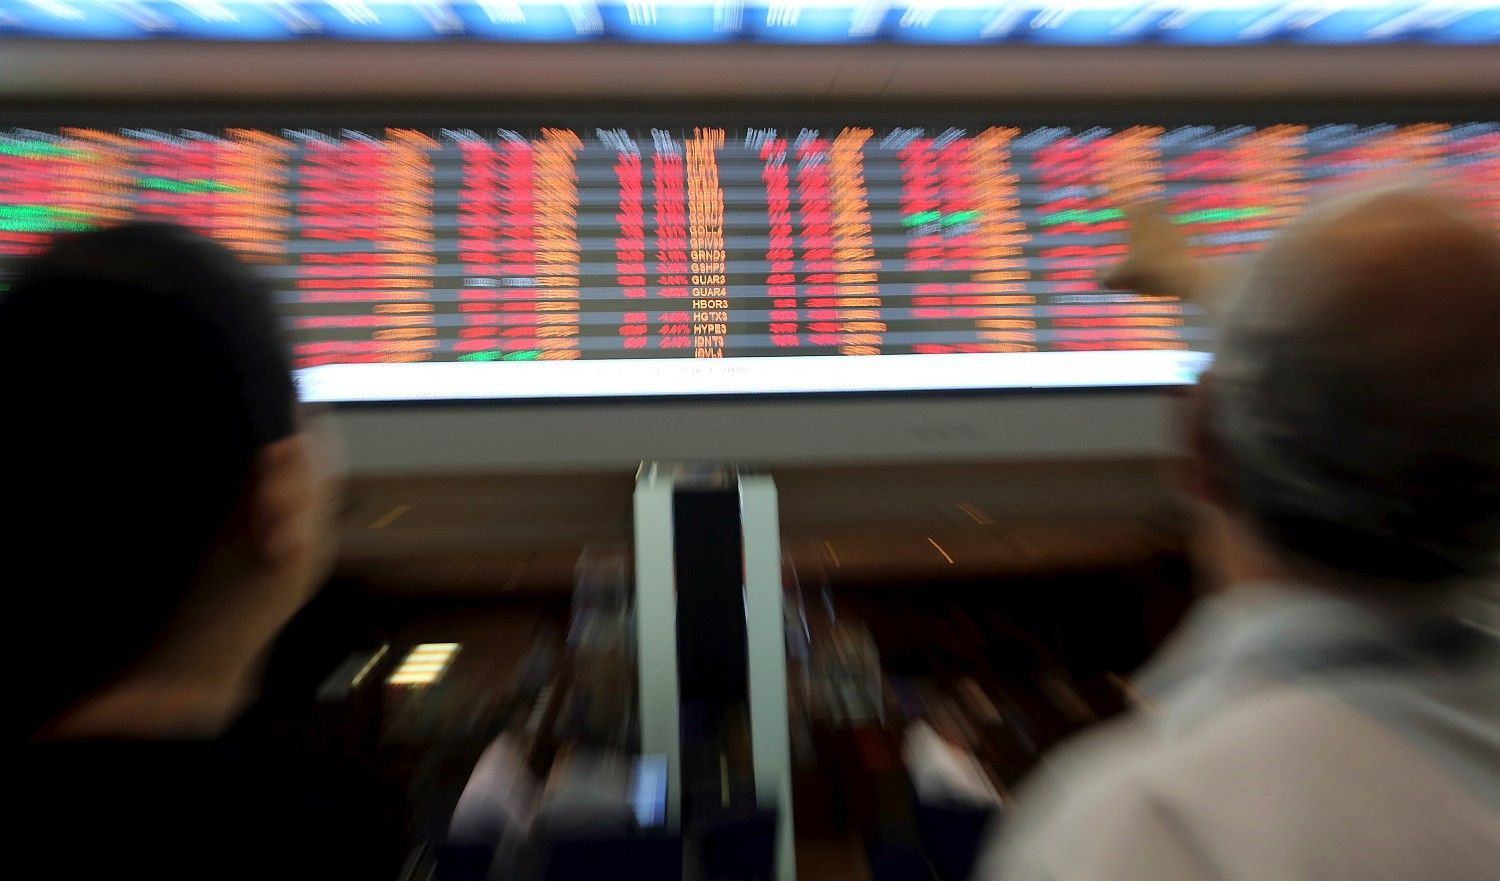 Asian Stocks Rise in Thin Trading; Yen Declines: Markets Wrap